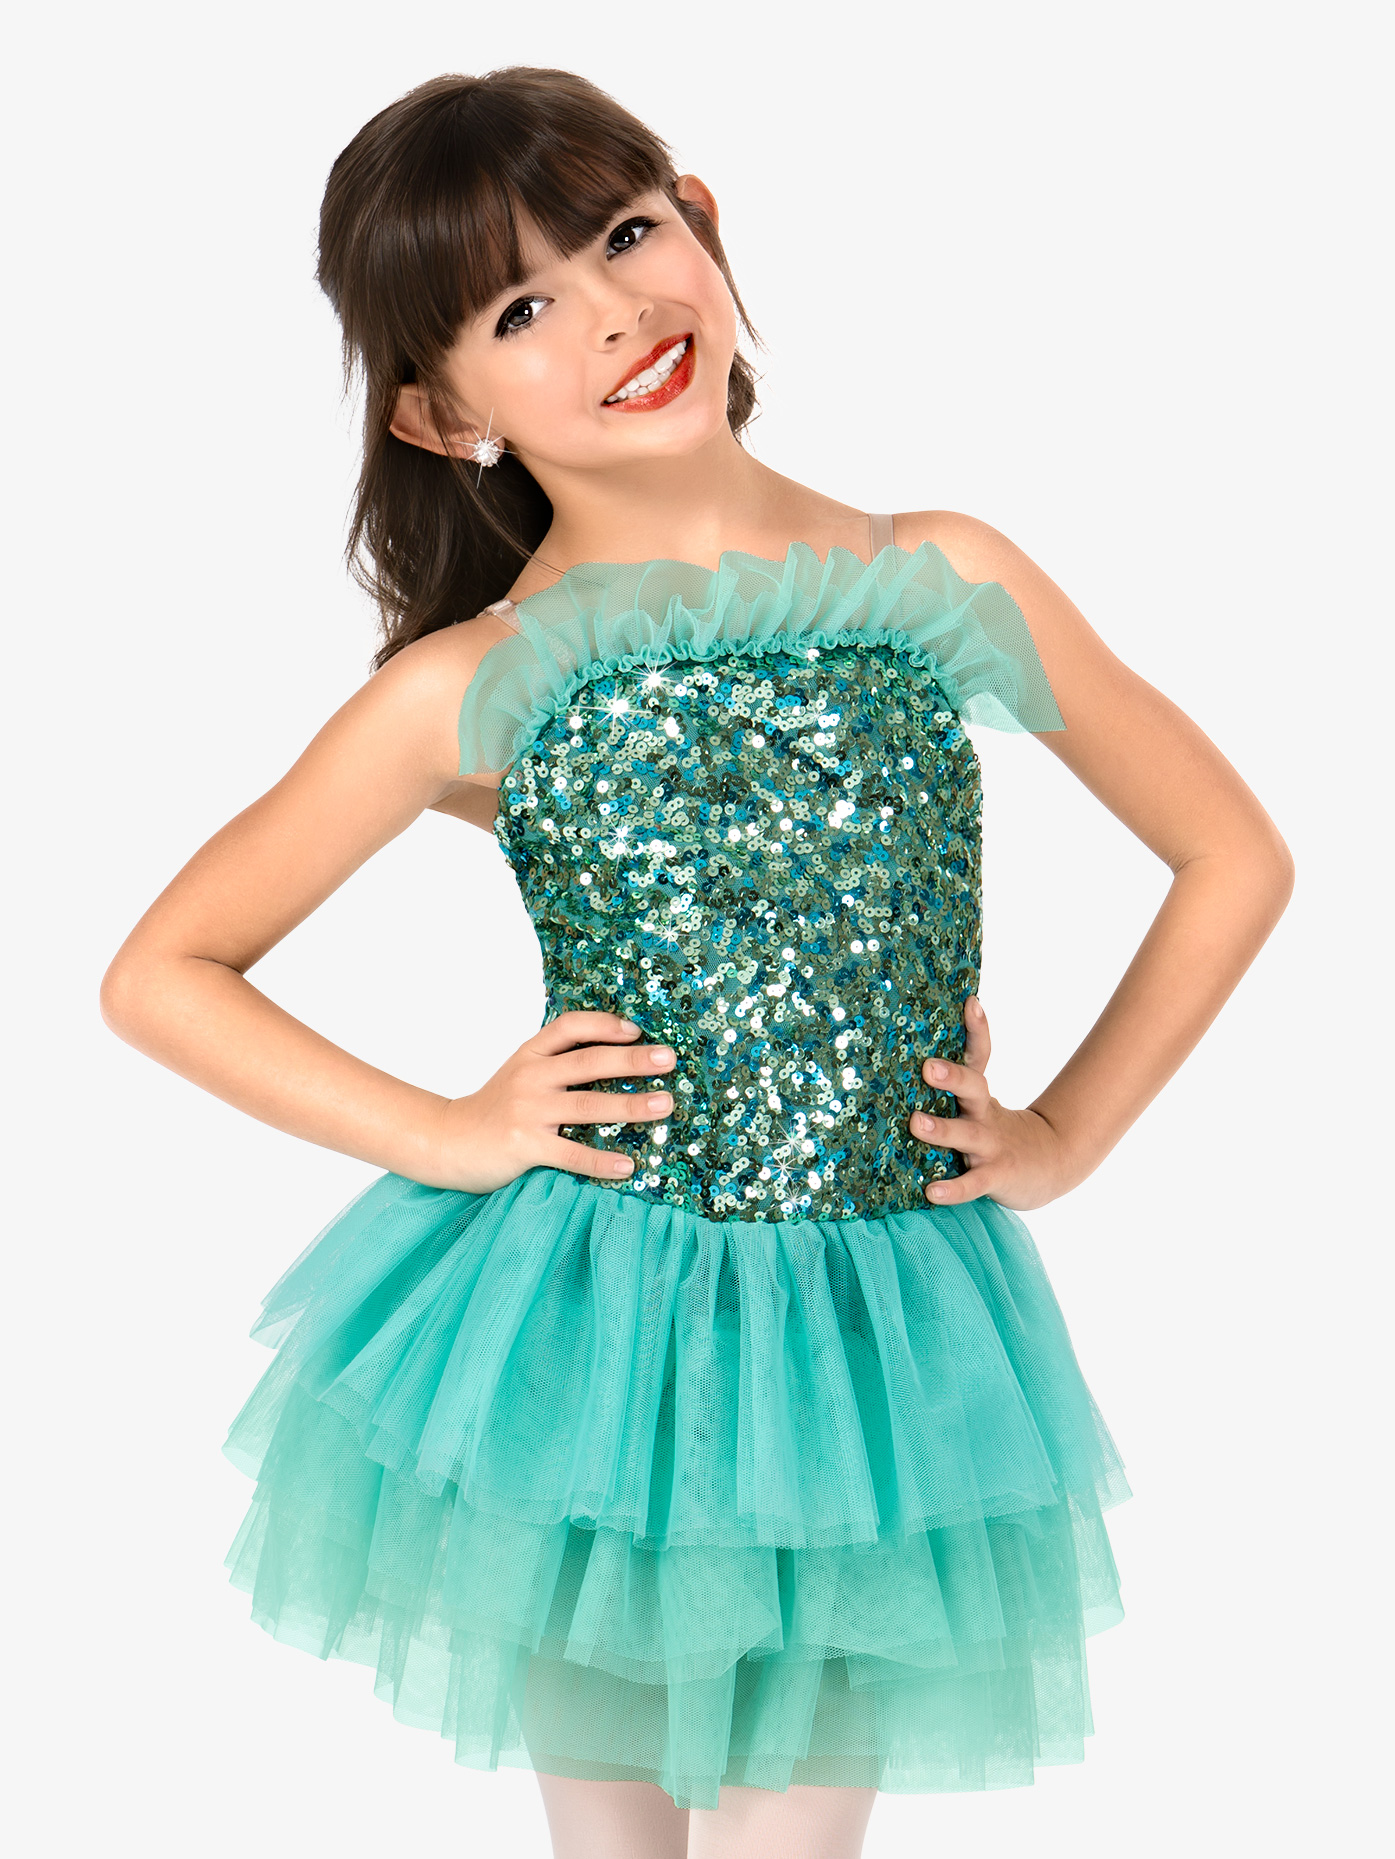 Gracie Girls Sequin Camisole Performance Tutu Dress N7454C